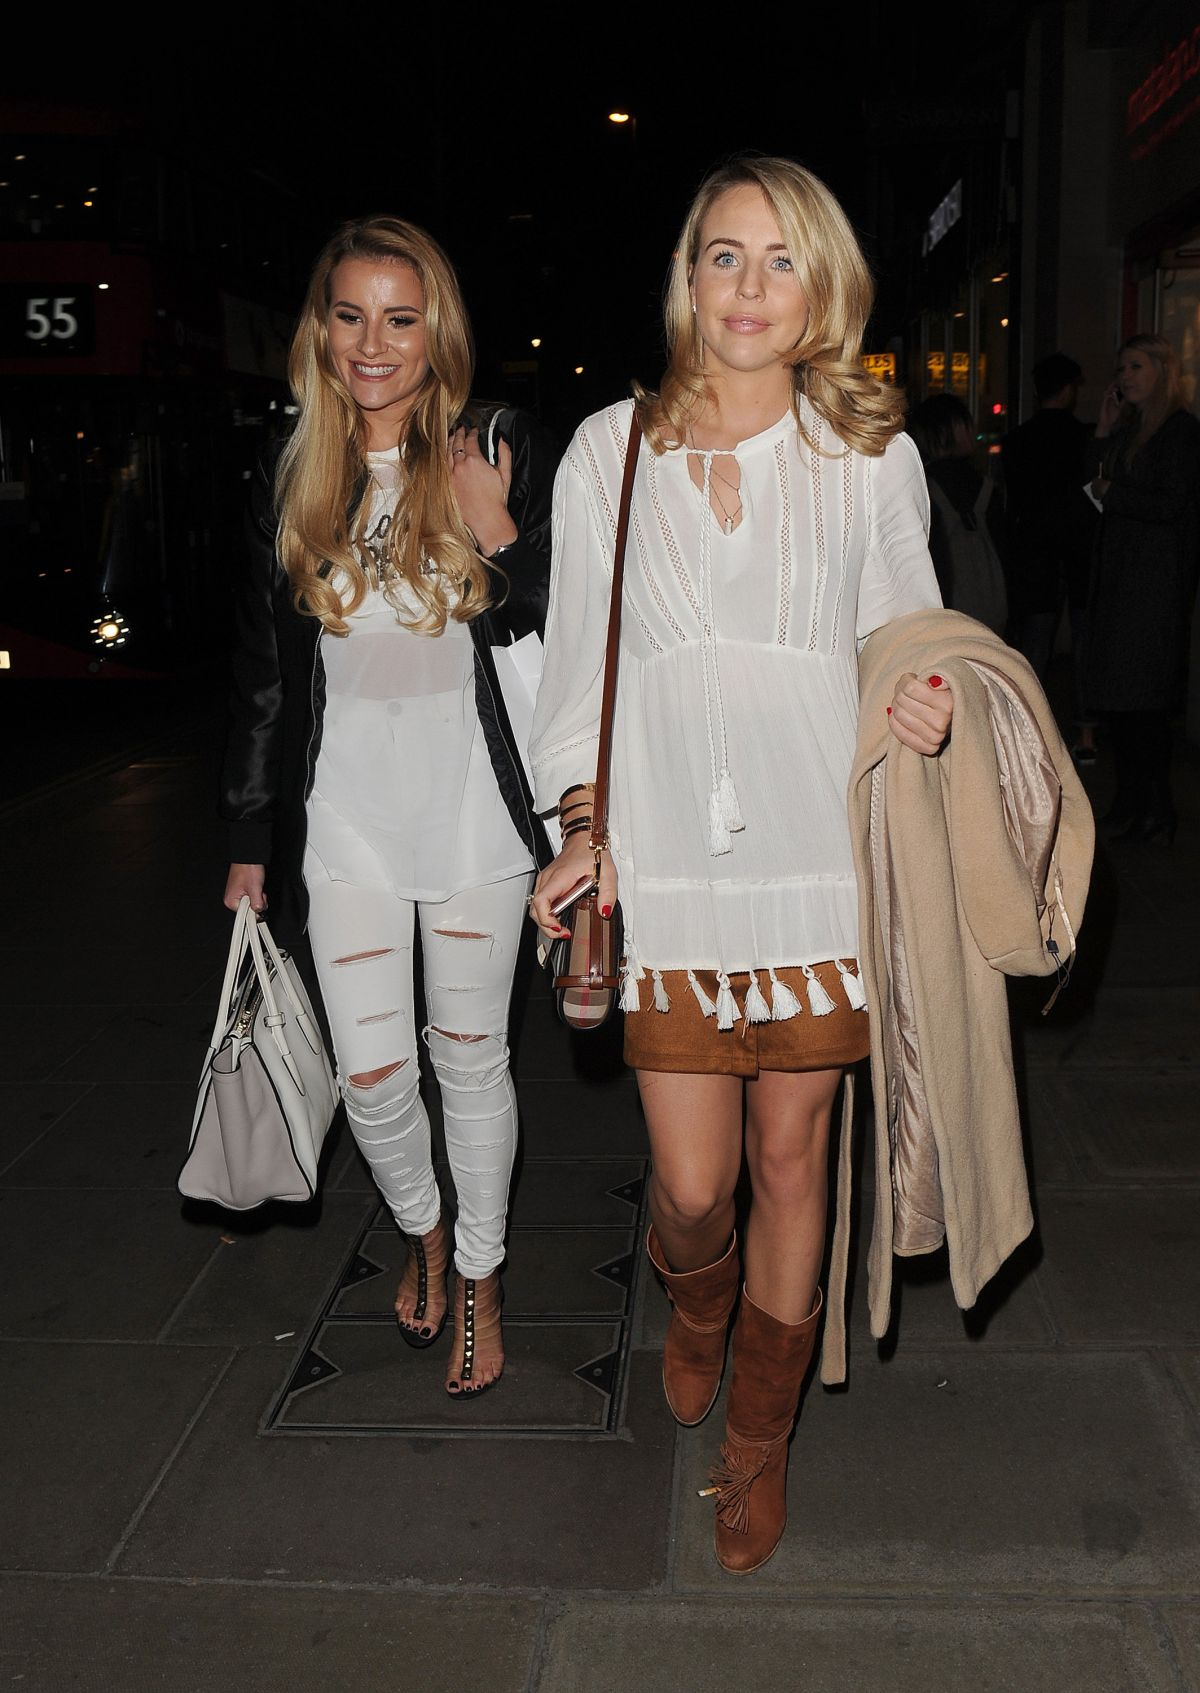 GEORGIA KOUSOULOU and LYDIA BRIGHT Night Out in London 03/17/2016